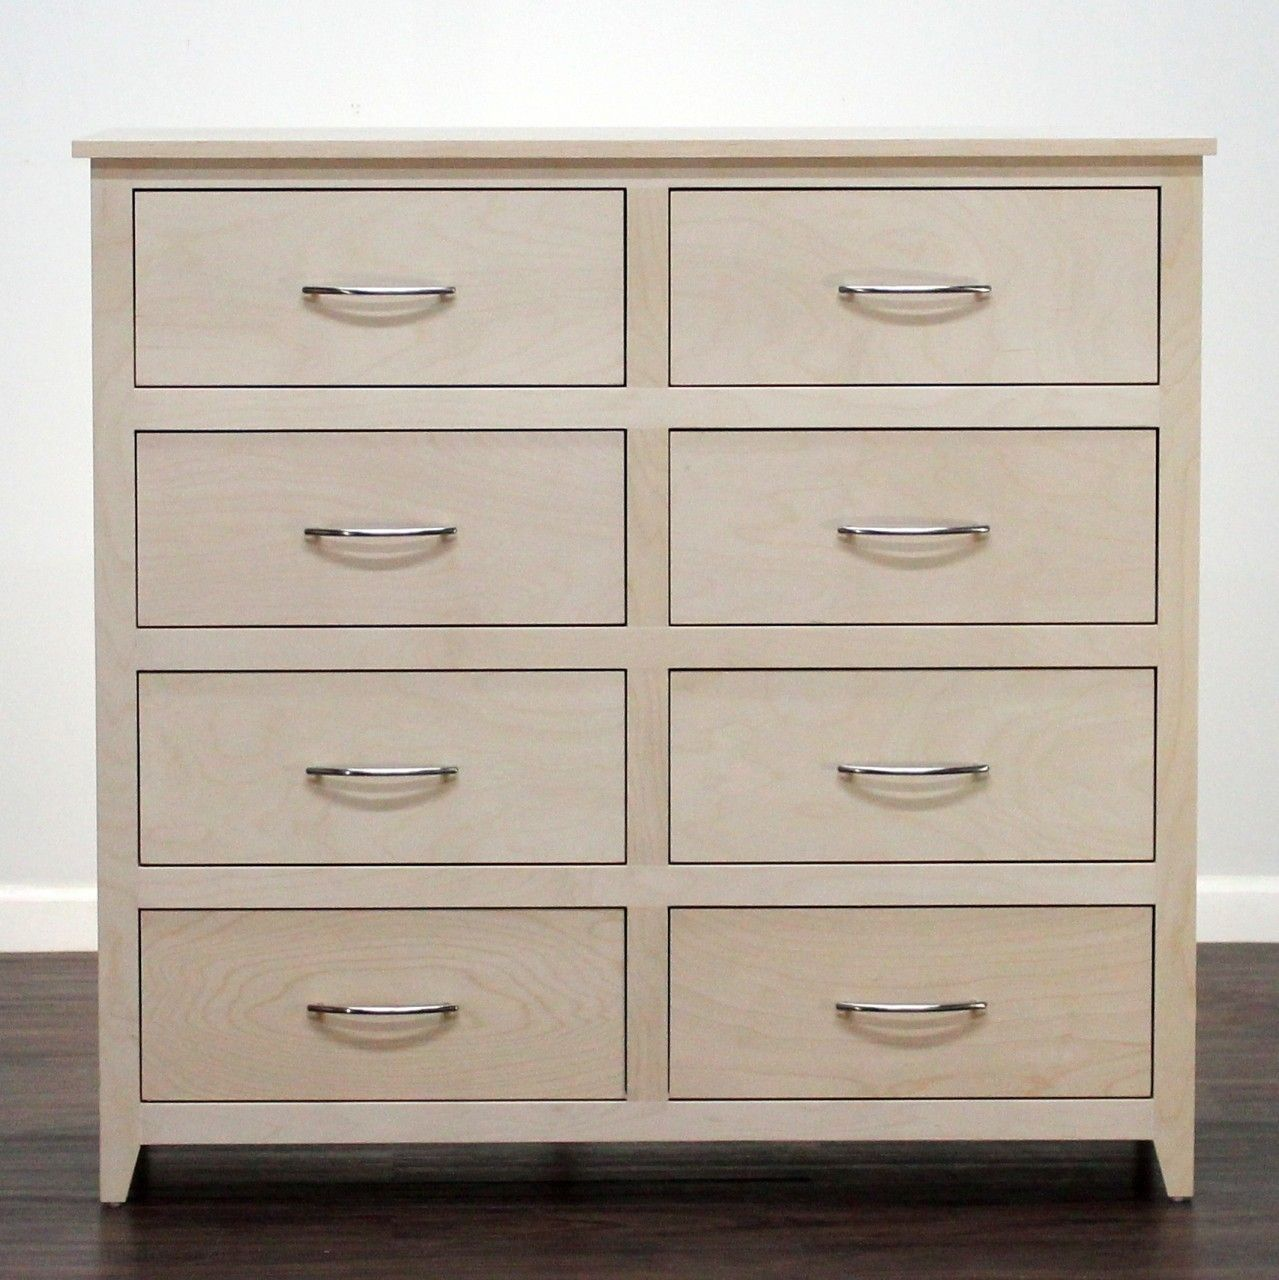 Douglaston 18 x 45 x 43 | Dresser, Drawers and Apartment makeover